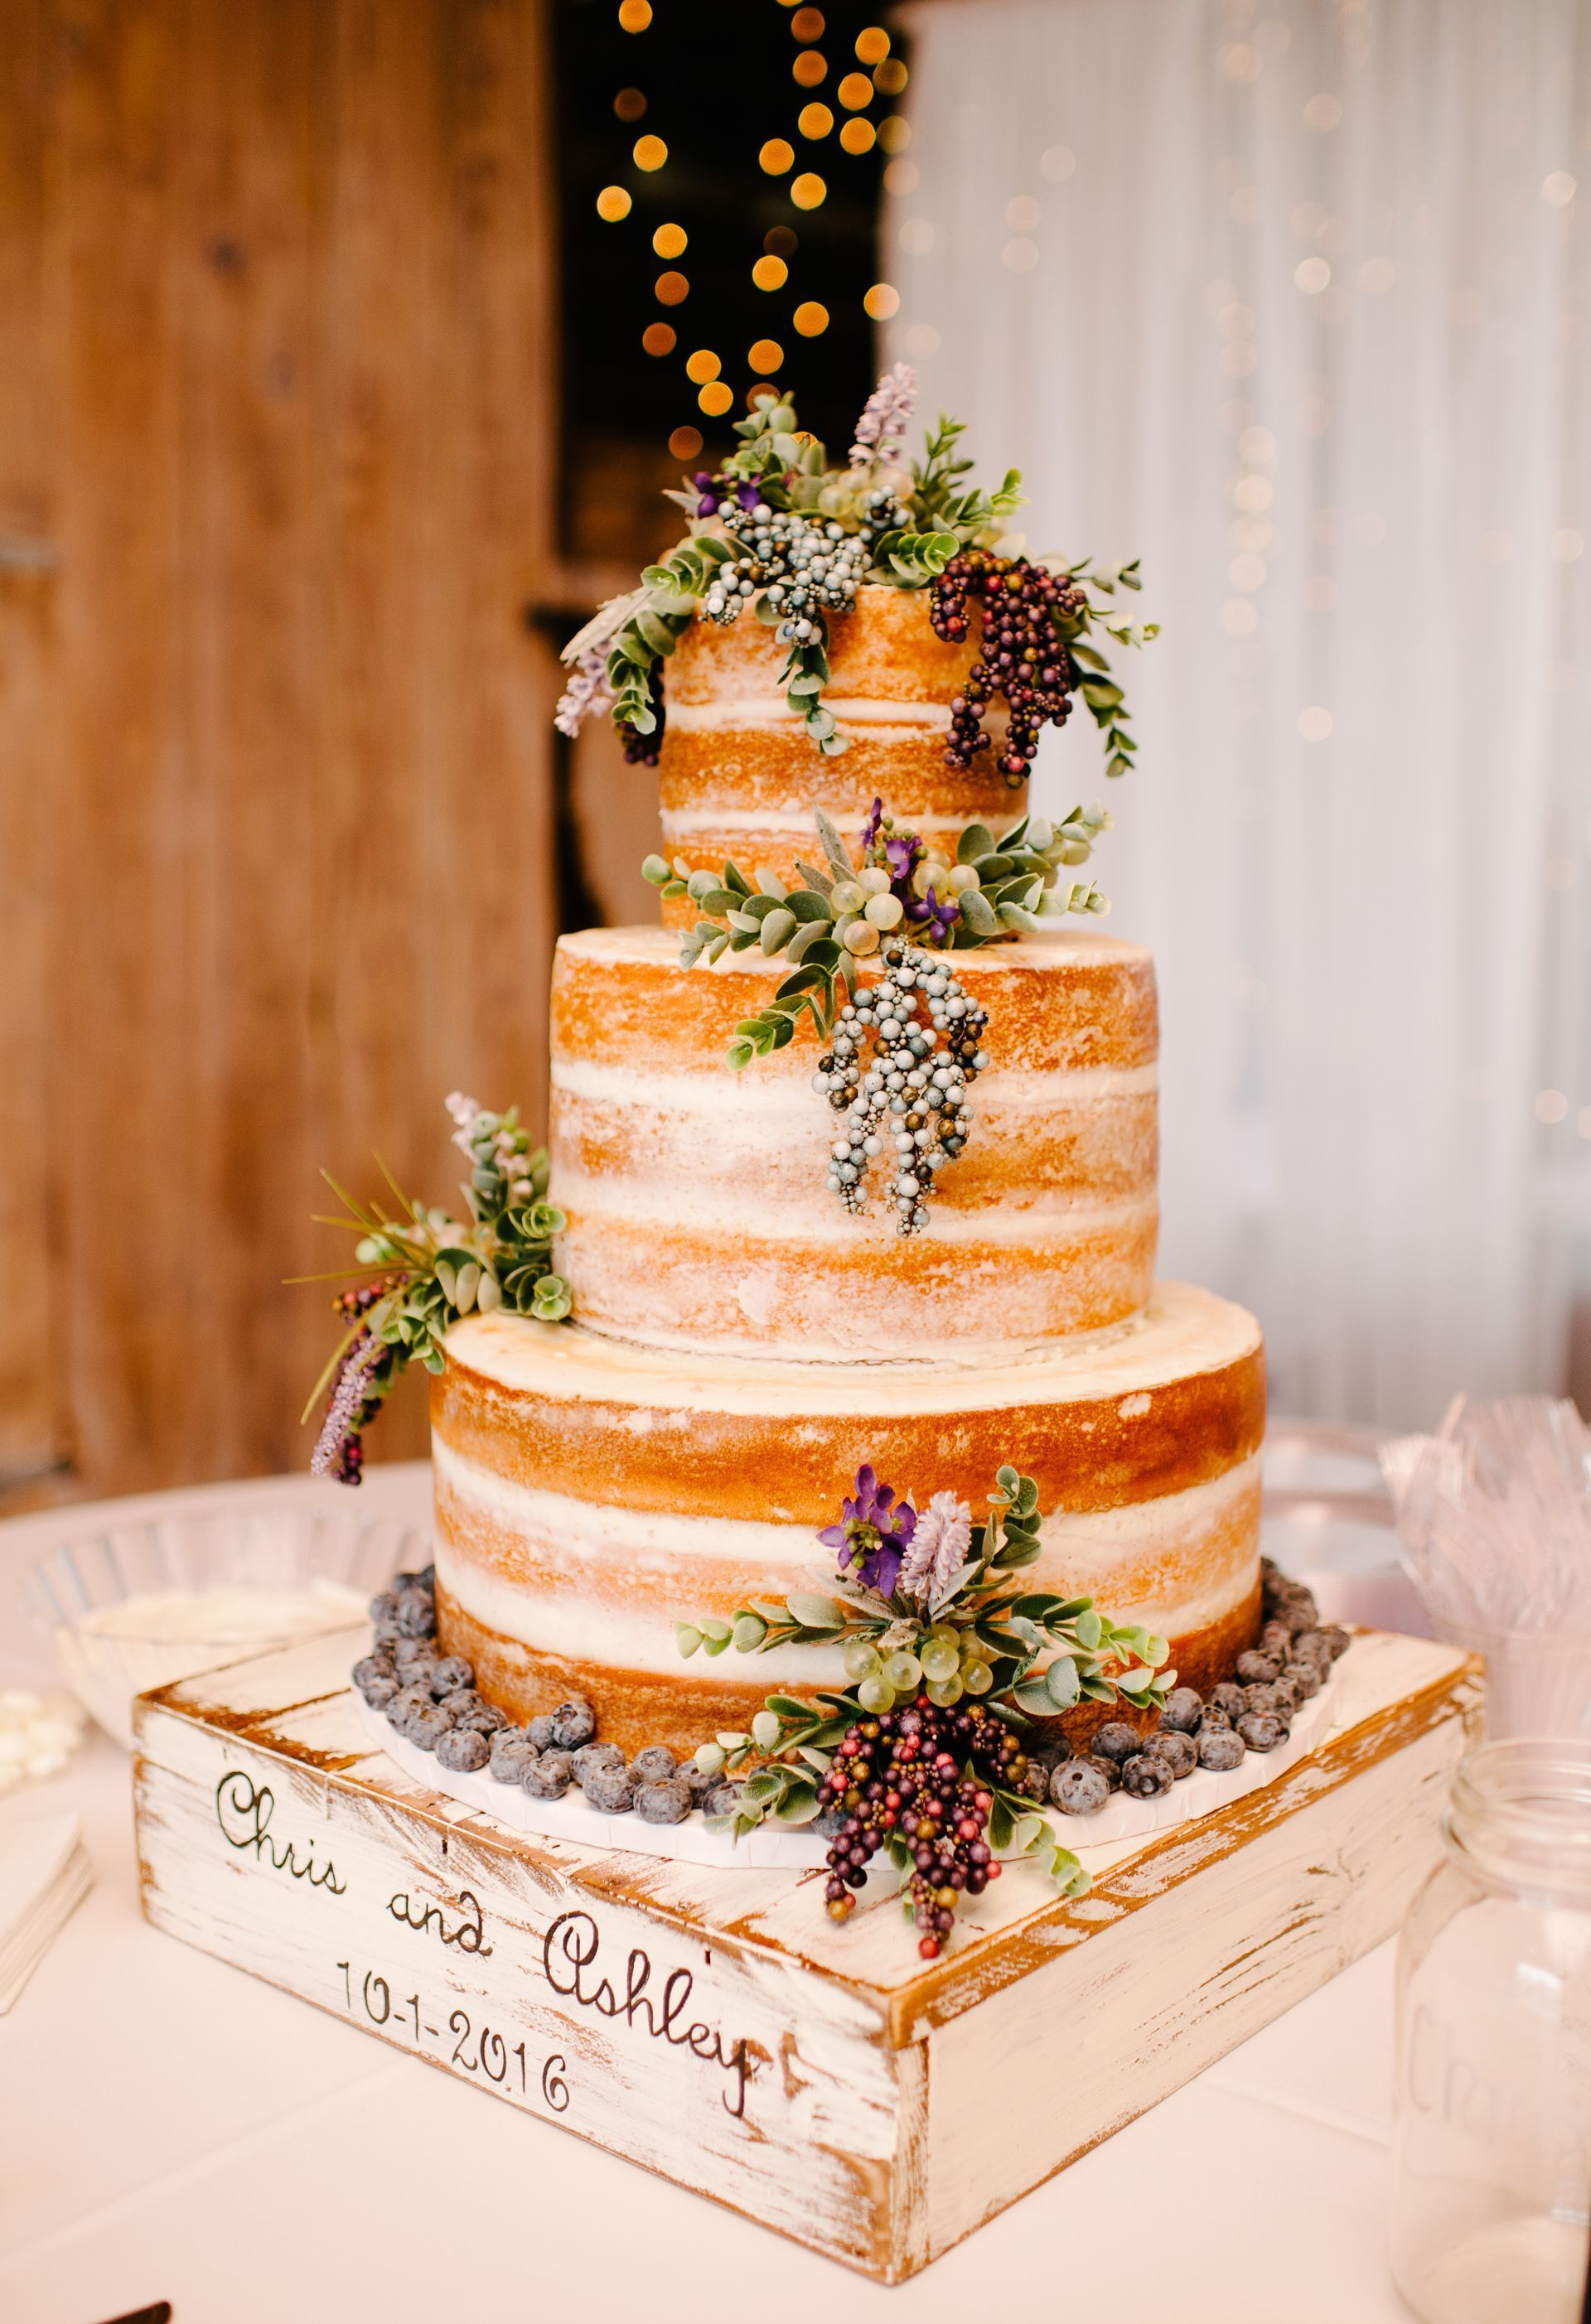 Naked cake berries rustic wooden box cake stand wedding cake